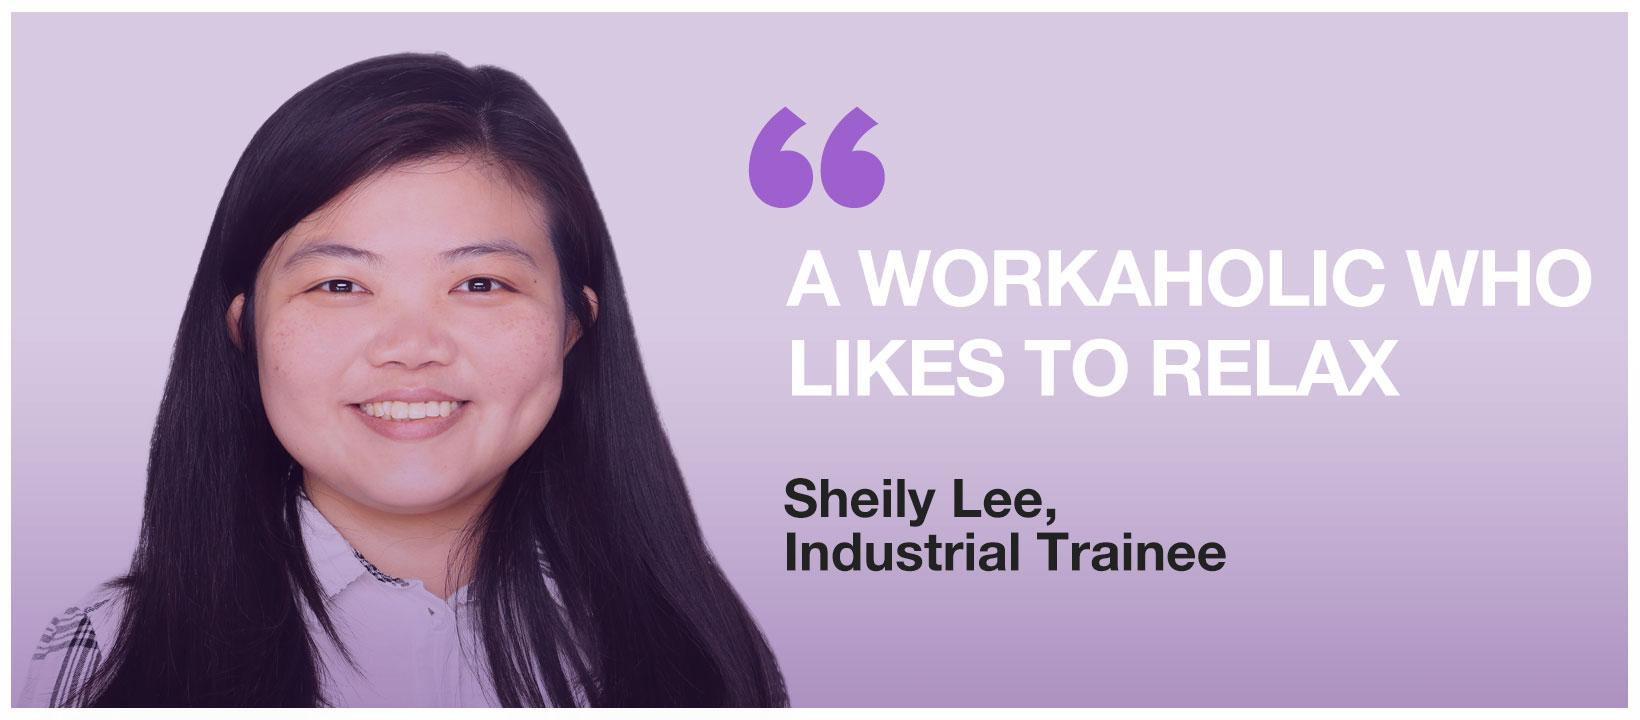 Sheily Lee: A Workaholic Who Likes to Relax